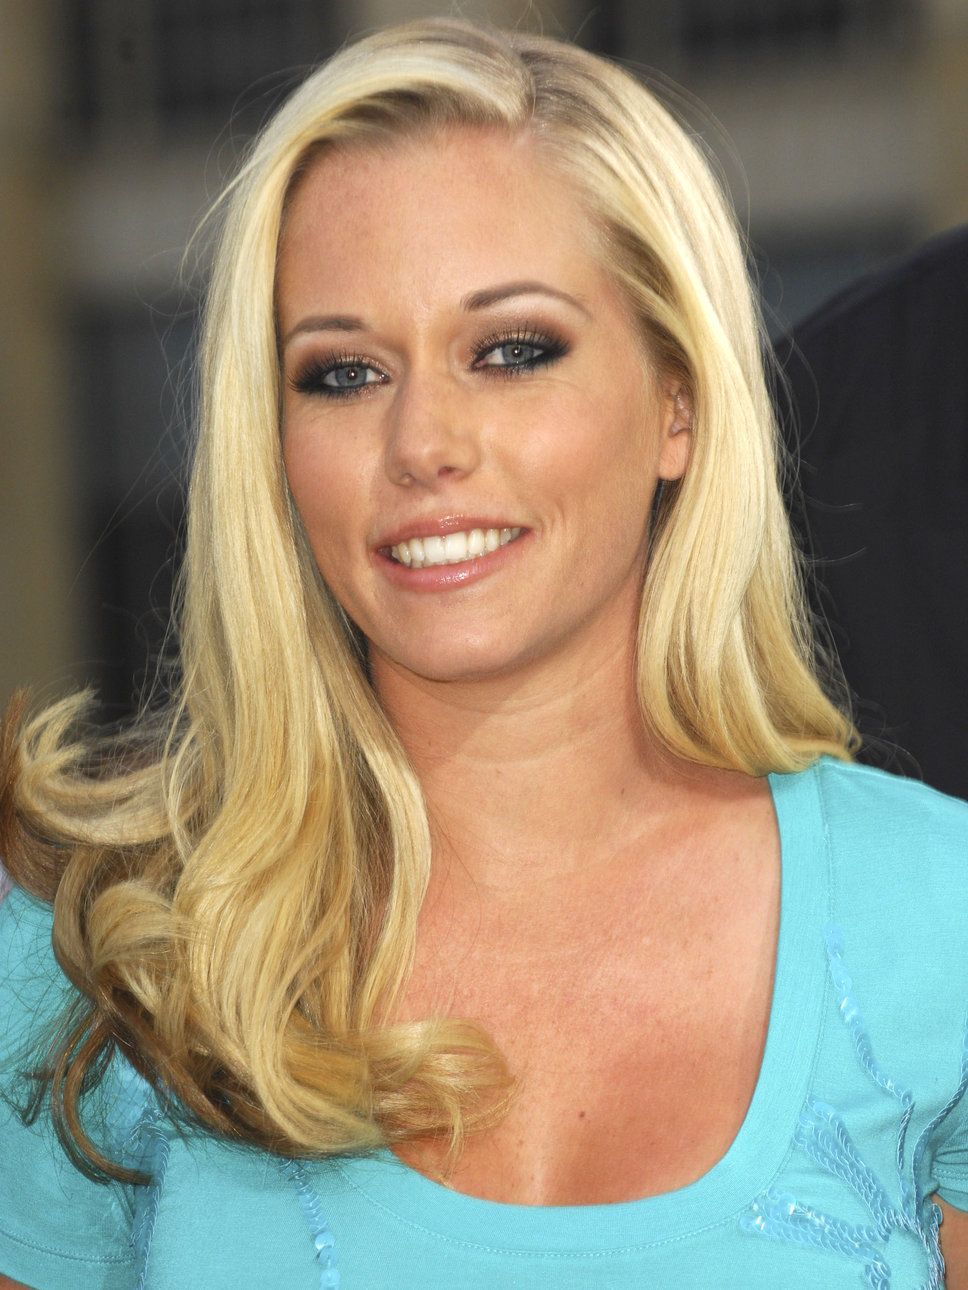 kendrawilkinson | #beauty #hairstyle | 12.05.14 | bvd | bvd